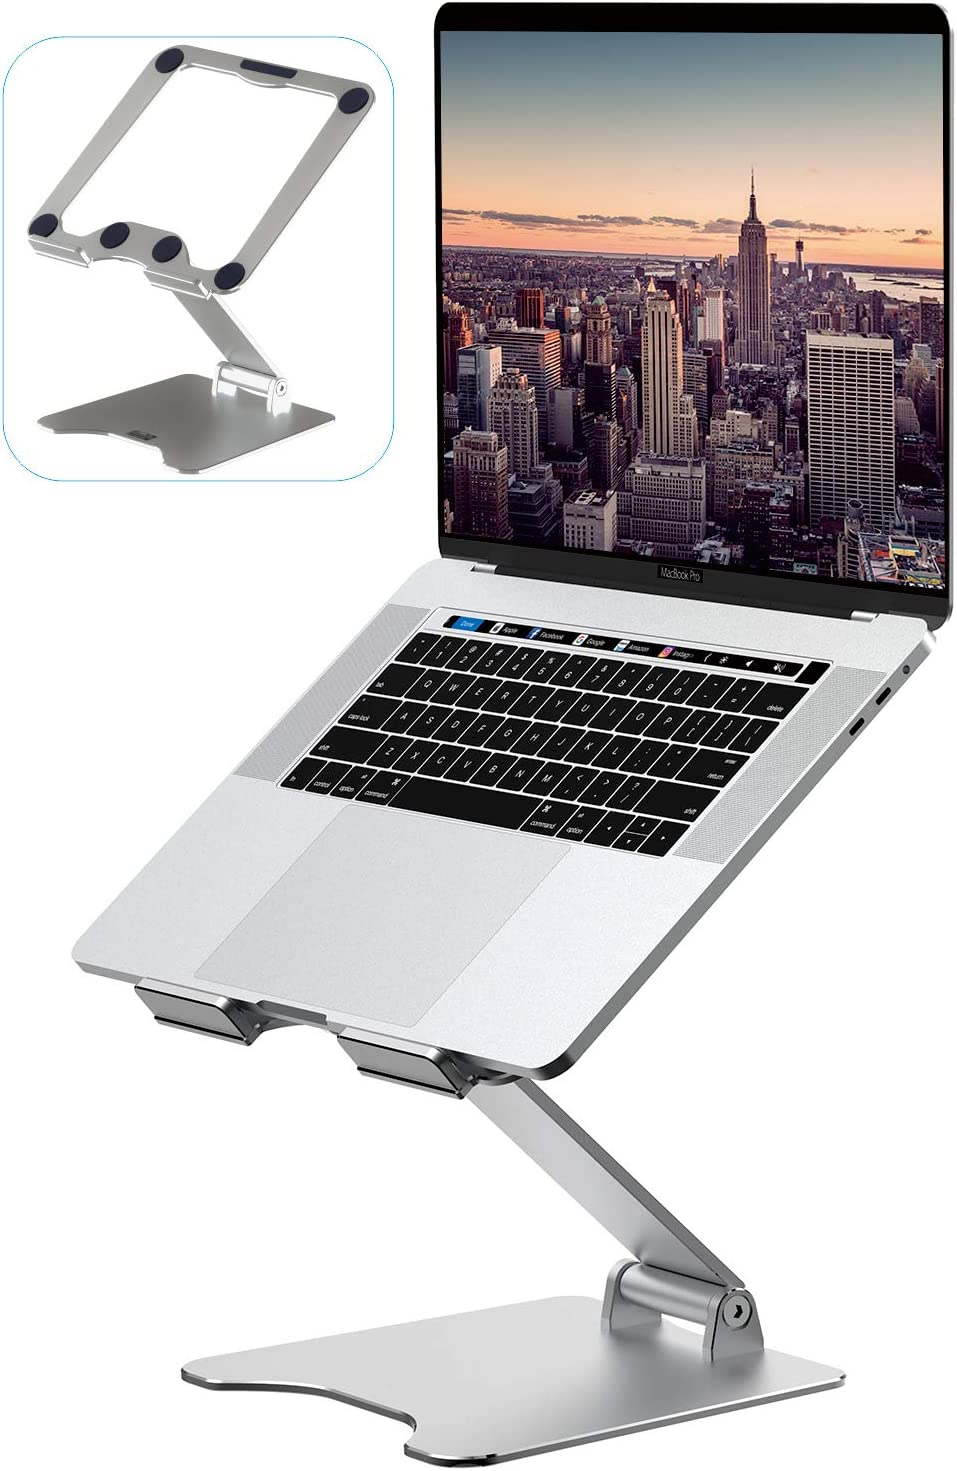 "Laptop Stand,VMEI Laptop Stand Adjustable Height for Desk,Metal Laptop Riser Compatible with MacBook, All Laptops Tablets 10-17.3"",Elevate Laptop Screen Height from 2""(5CM) to14(35CM)-Silver"